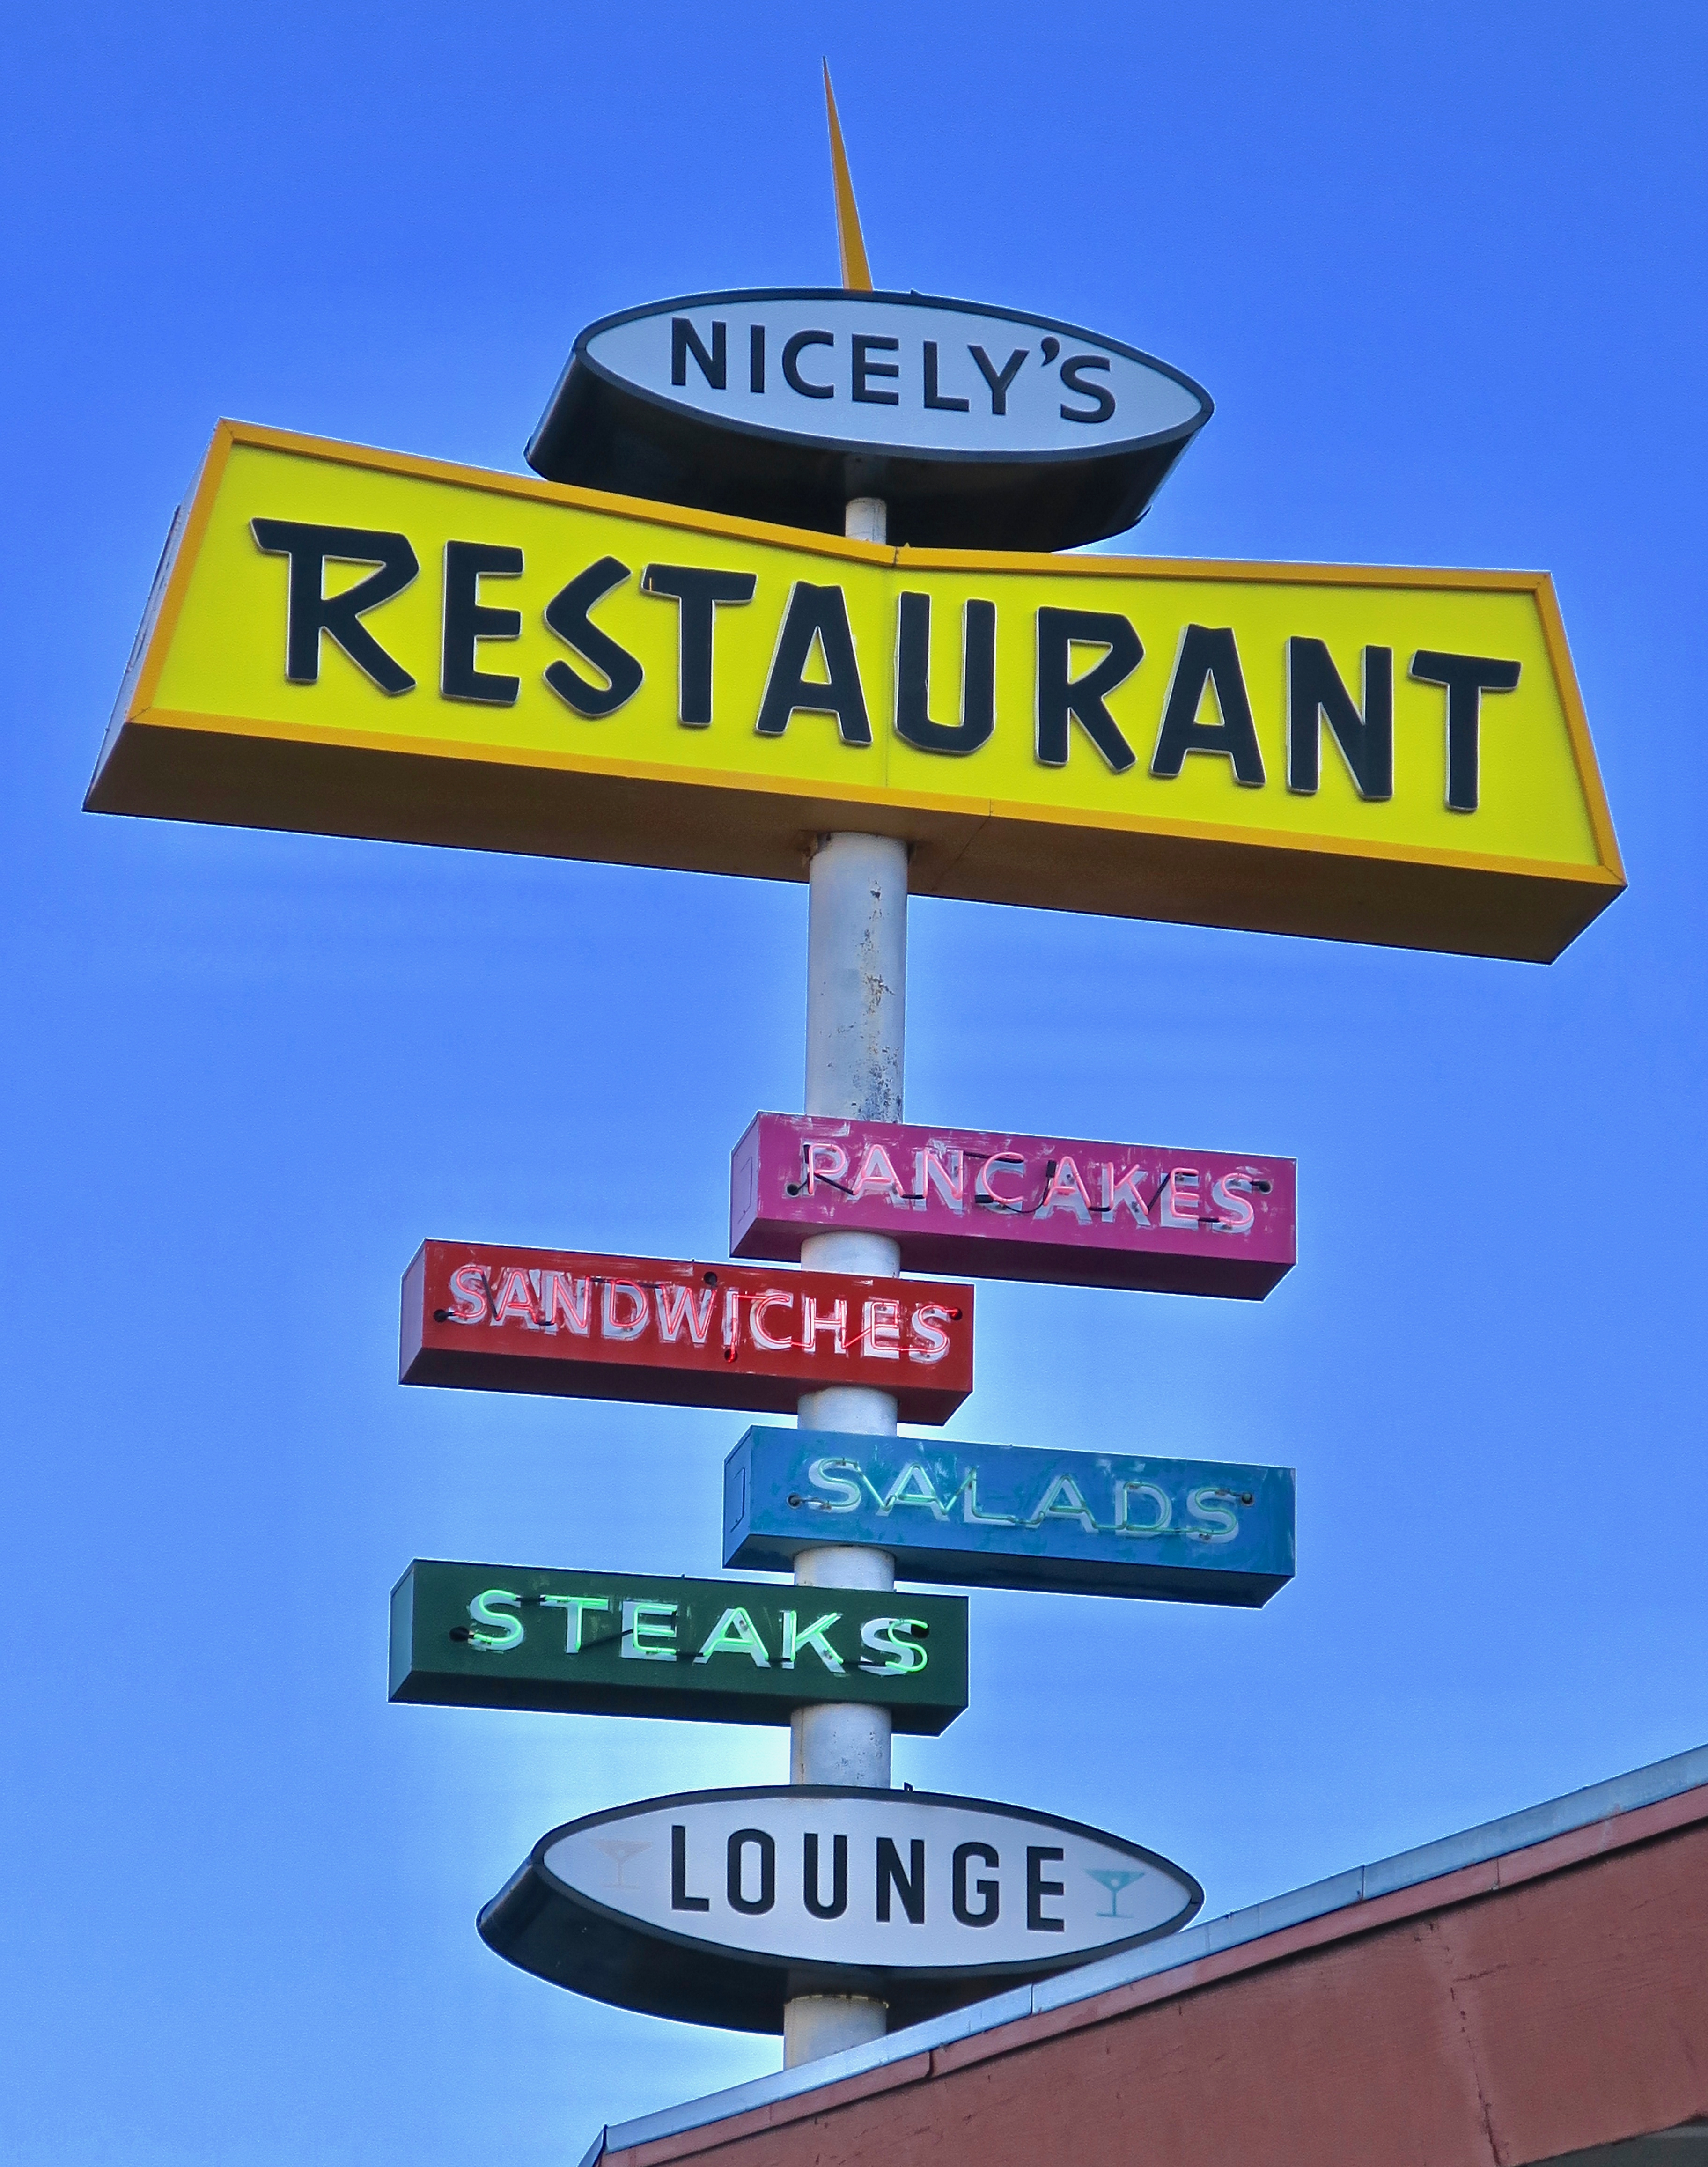 Nicely's Restaurant - U.S. 395, Lee Vining, California U.S.A. - July 28, 2017